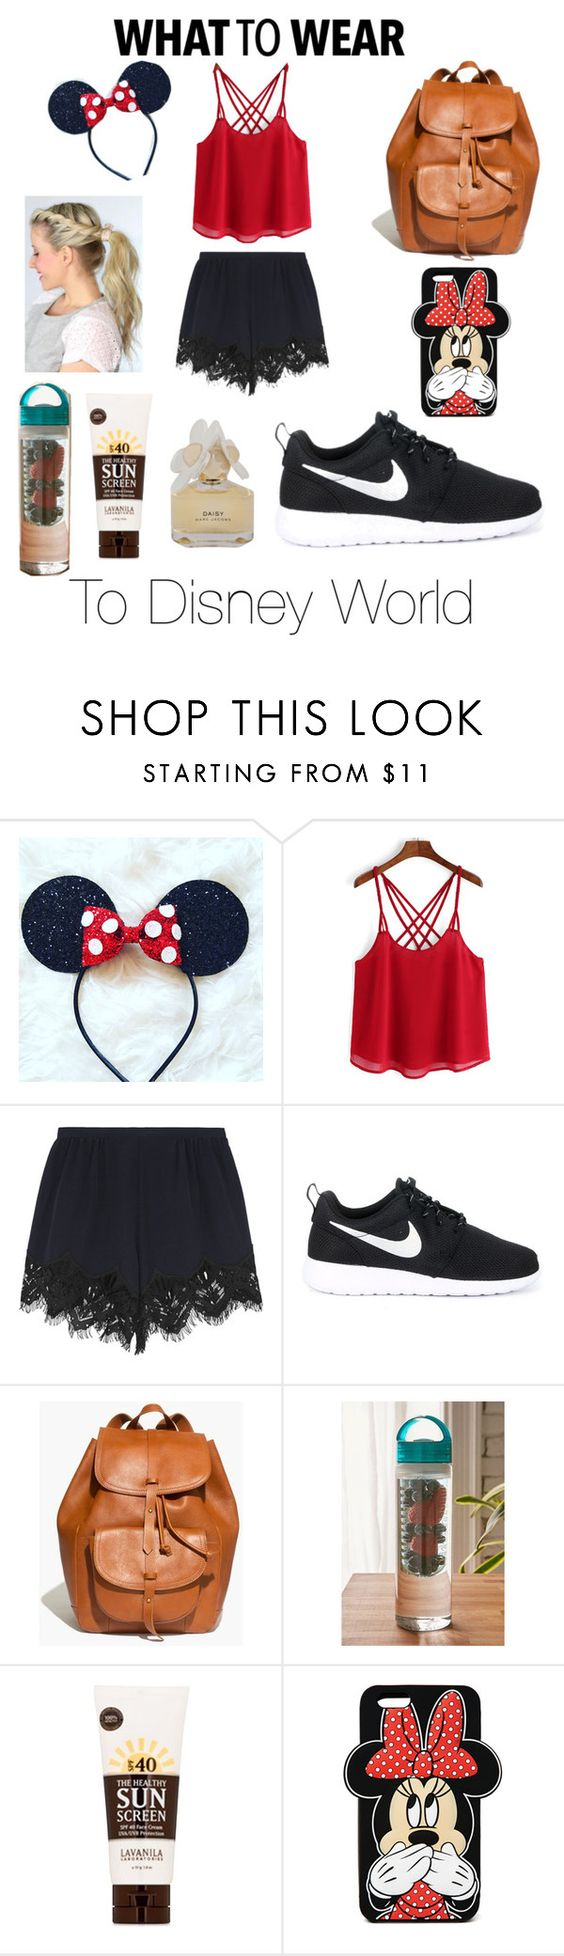 """""""What To Wear To Disney World"""" by ecthebooklion ❤ liked on Polyvore featuring Chloé, NIKE, Madewell, Urban Outfitters, Lavanila, Forever 21, Marc by Marc Jacobs, disney and disneybound"""